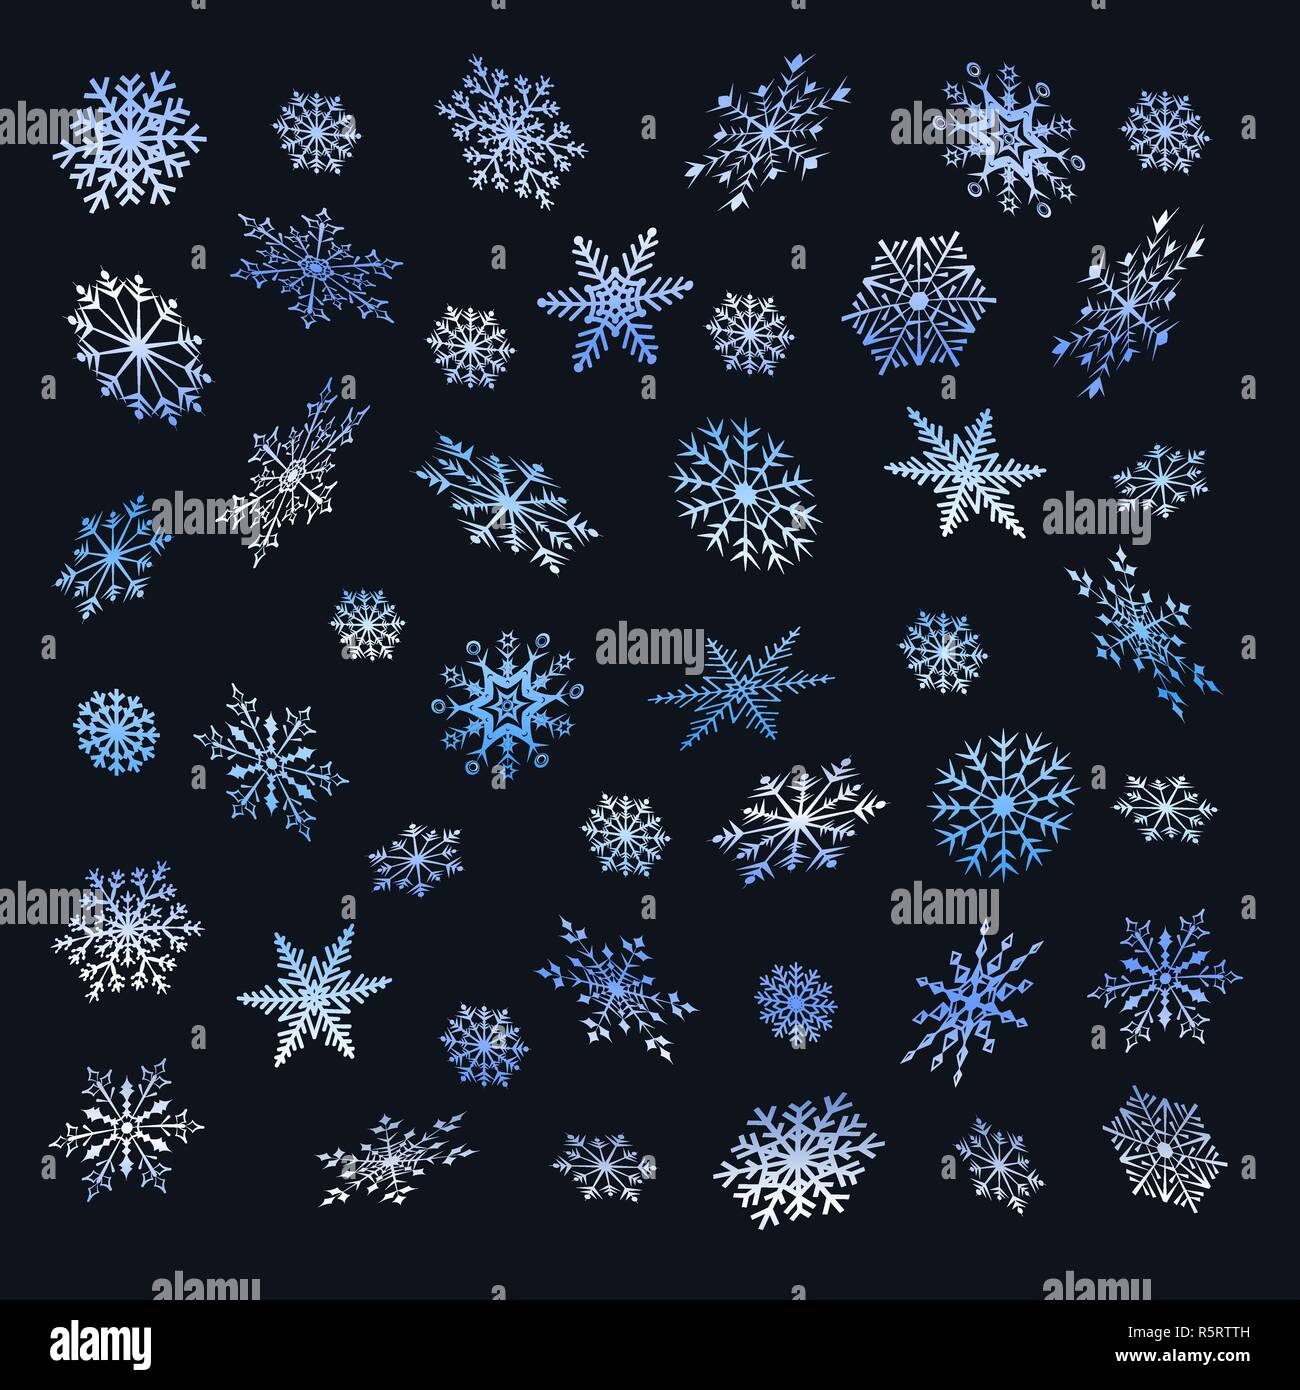 Set of Christmas snowflakes on a dark background. - Stock Image